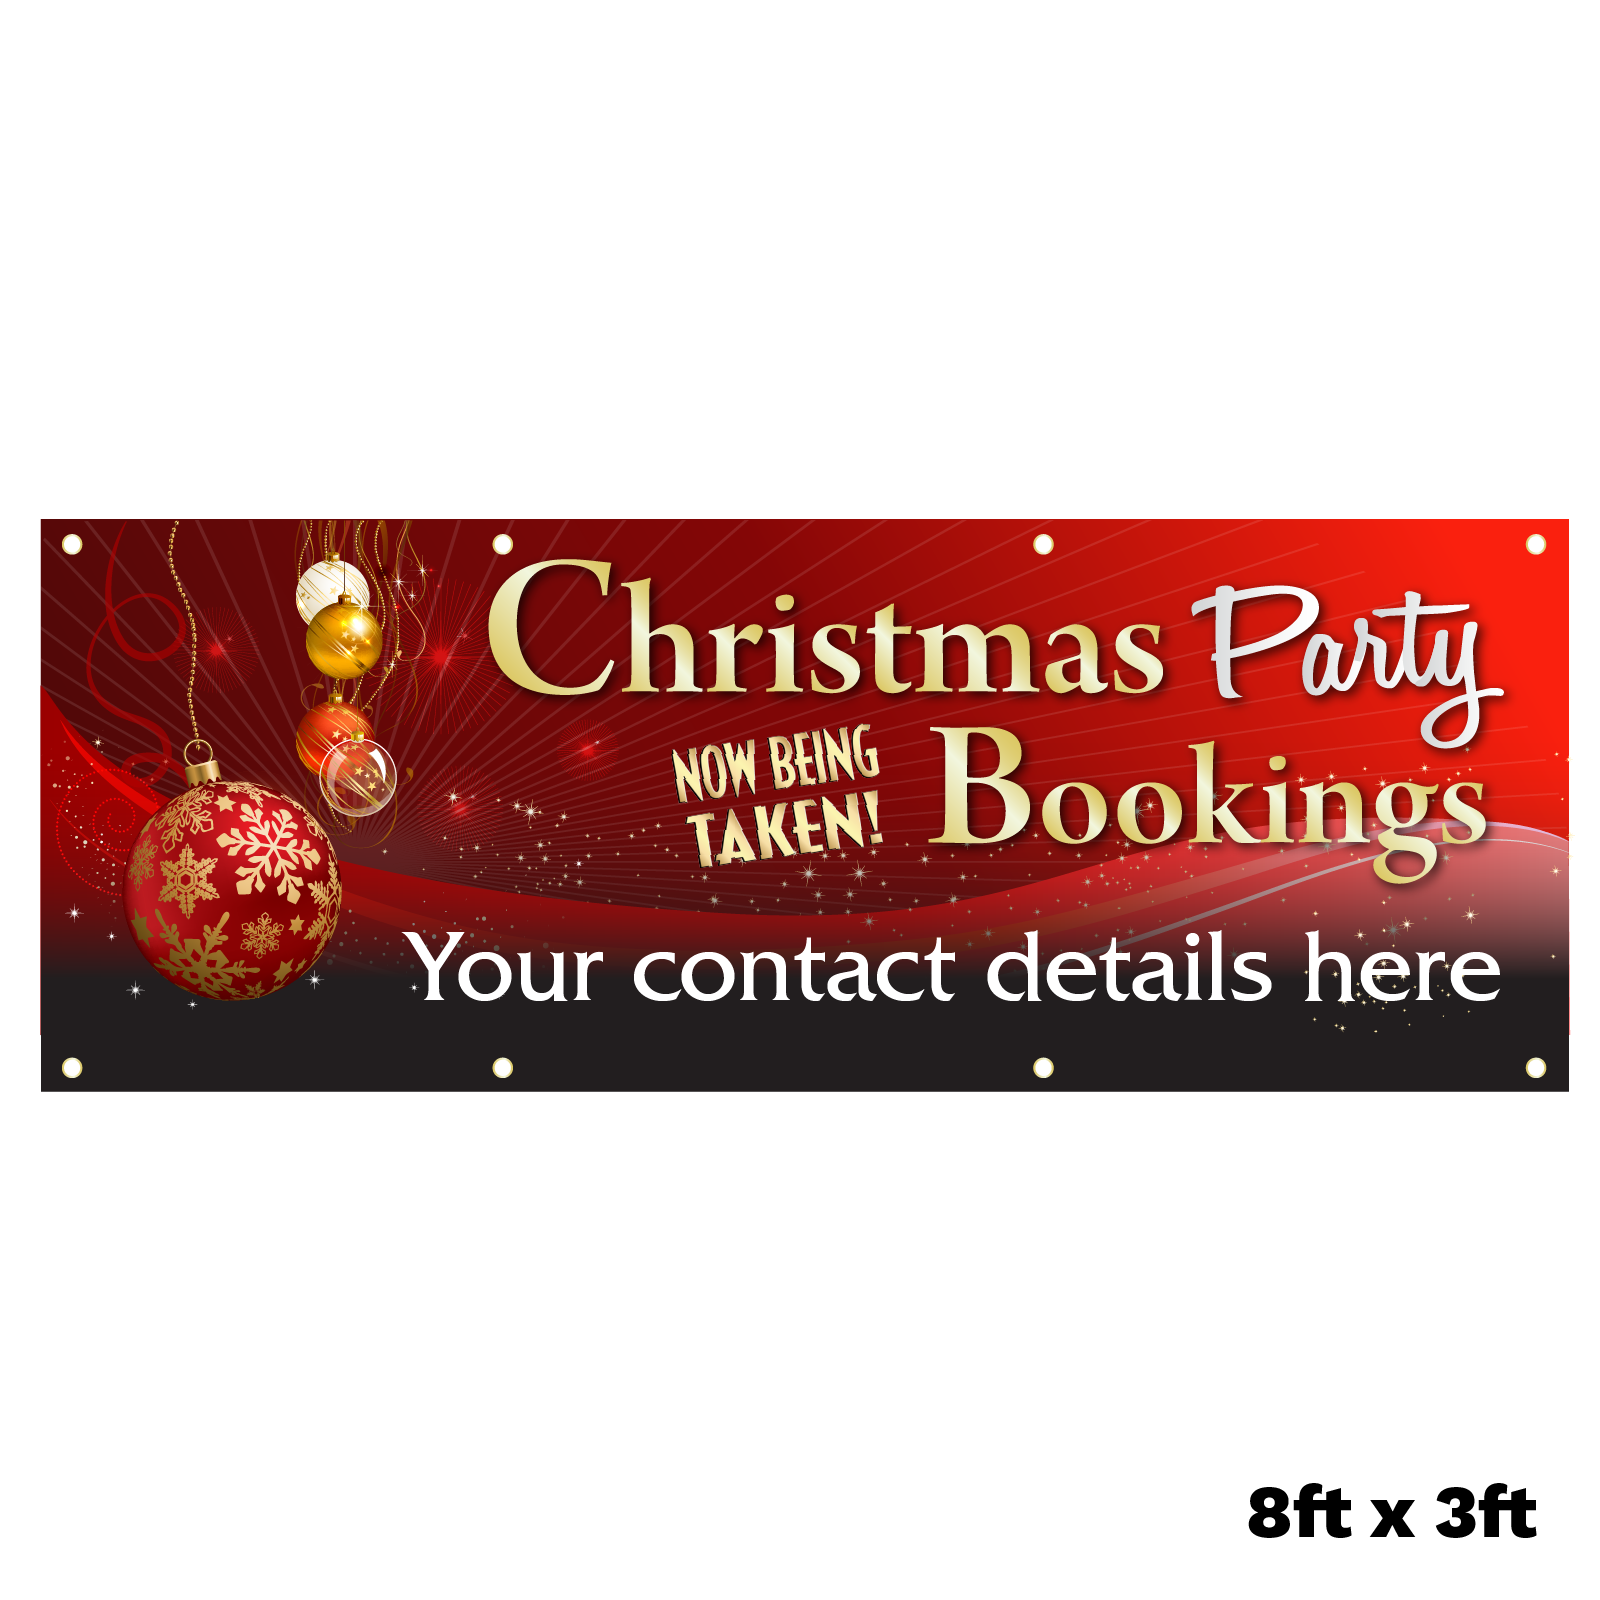 Personalised Christmas Party Bookings Now Being Taken